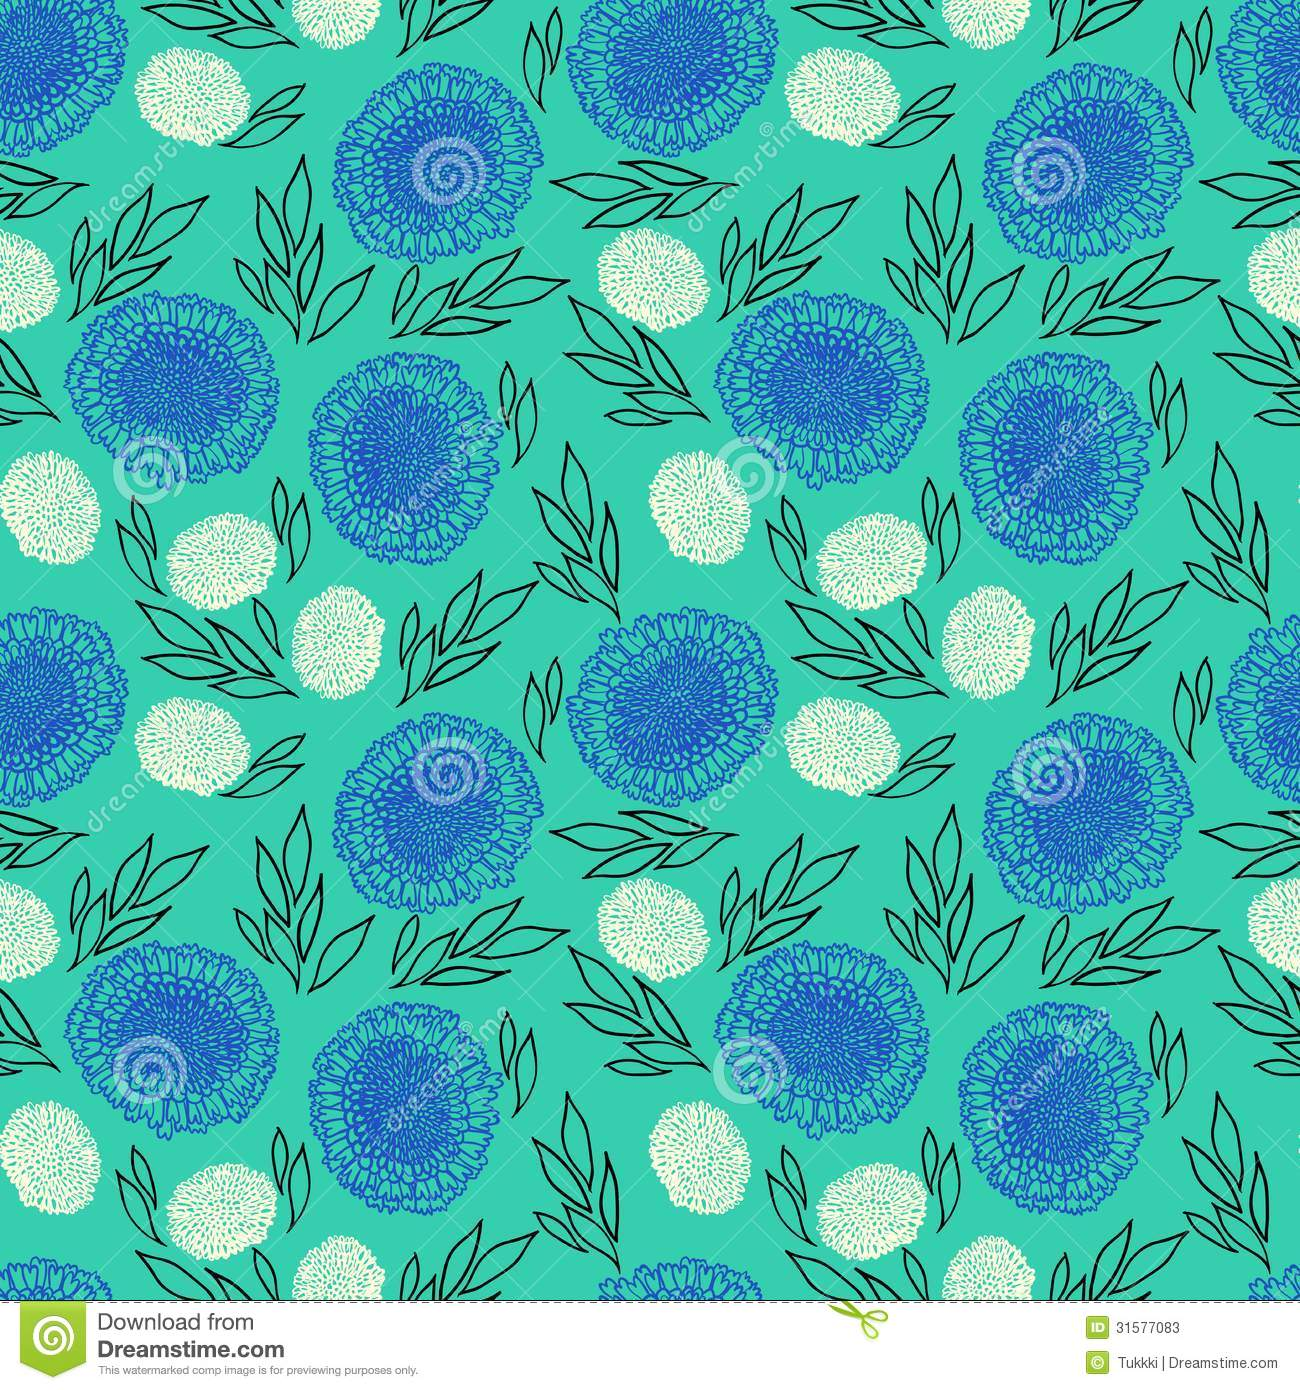 Tropical Home Decor Fabric Vector Pattern With Flowers Drawn In Thin Lines Stock